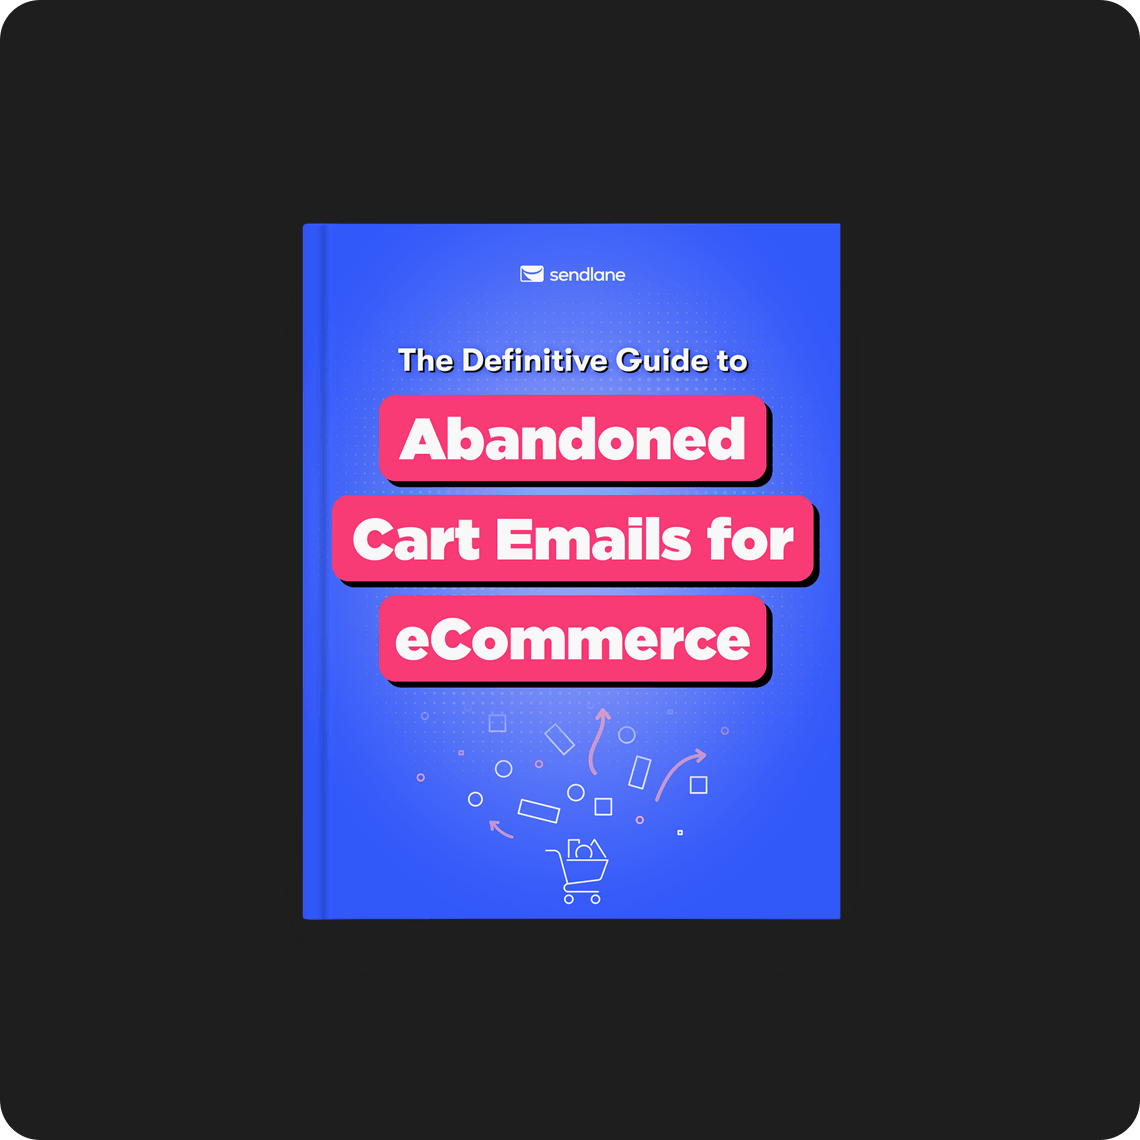 The Definitive Guide to Abandoned Cart Funnels for eCommerce